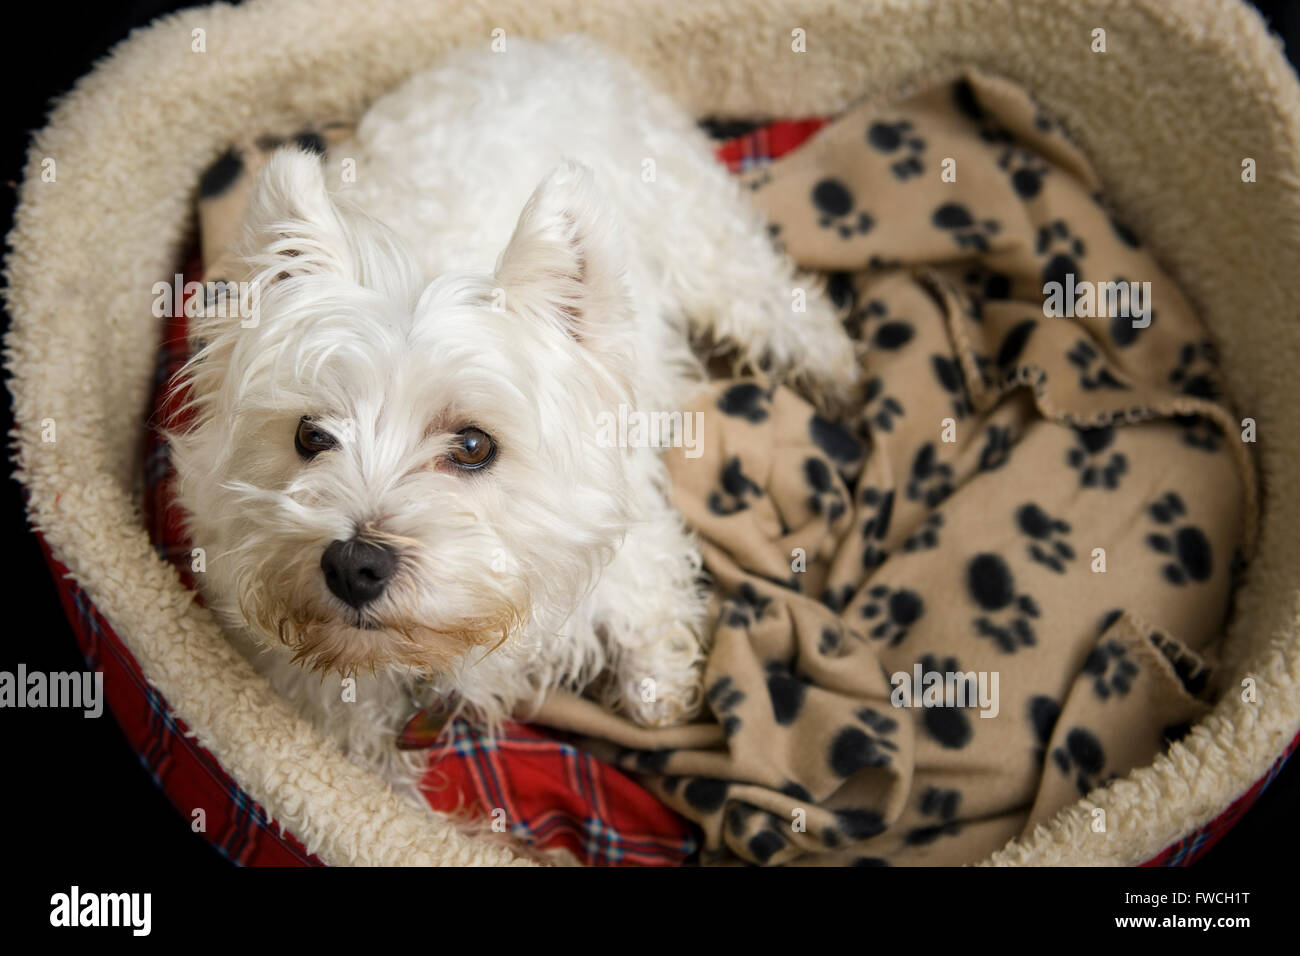 A crop of a cute white West Highland Terrier also known as a Westie, resting in it's dog bed - Stock Image